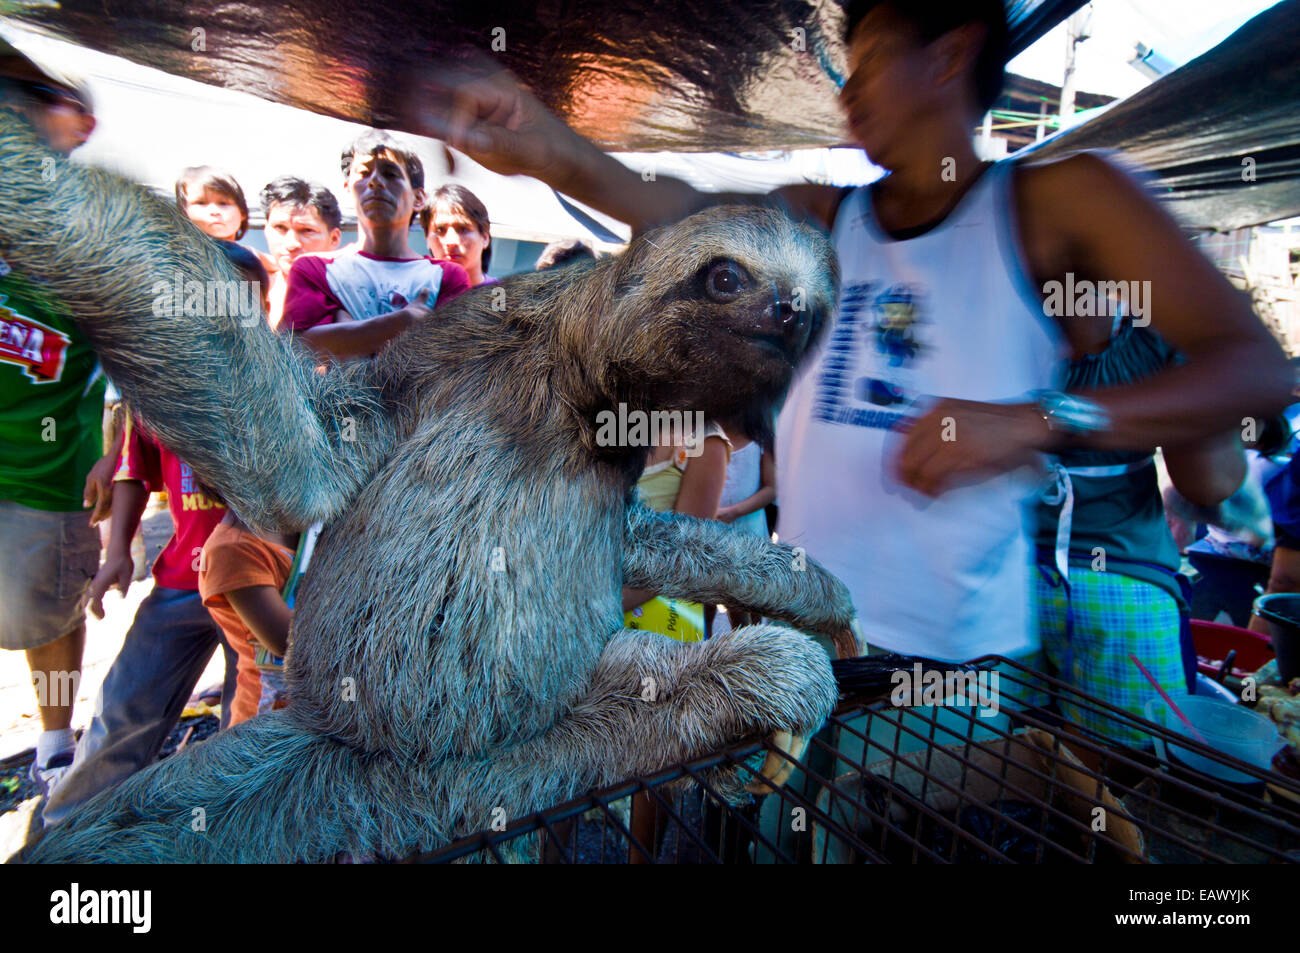 Worksheet 3 Toed Sloth For Sale a juvenile brown throated three toed sloth for sale in an illegal black market